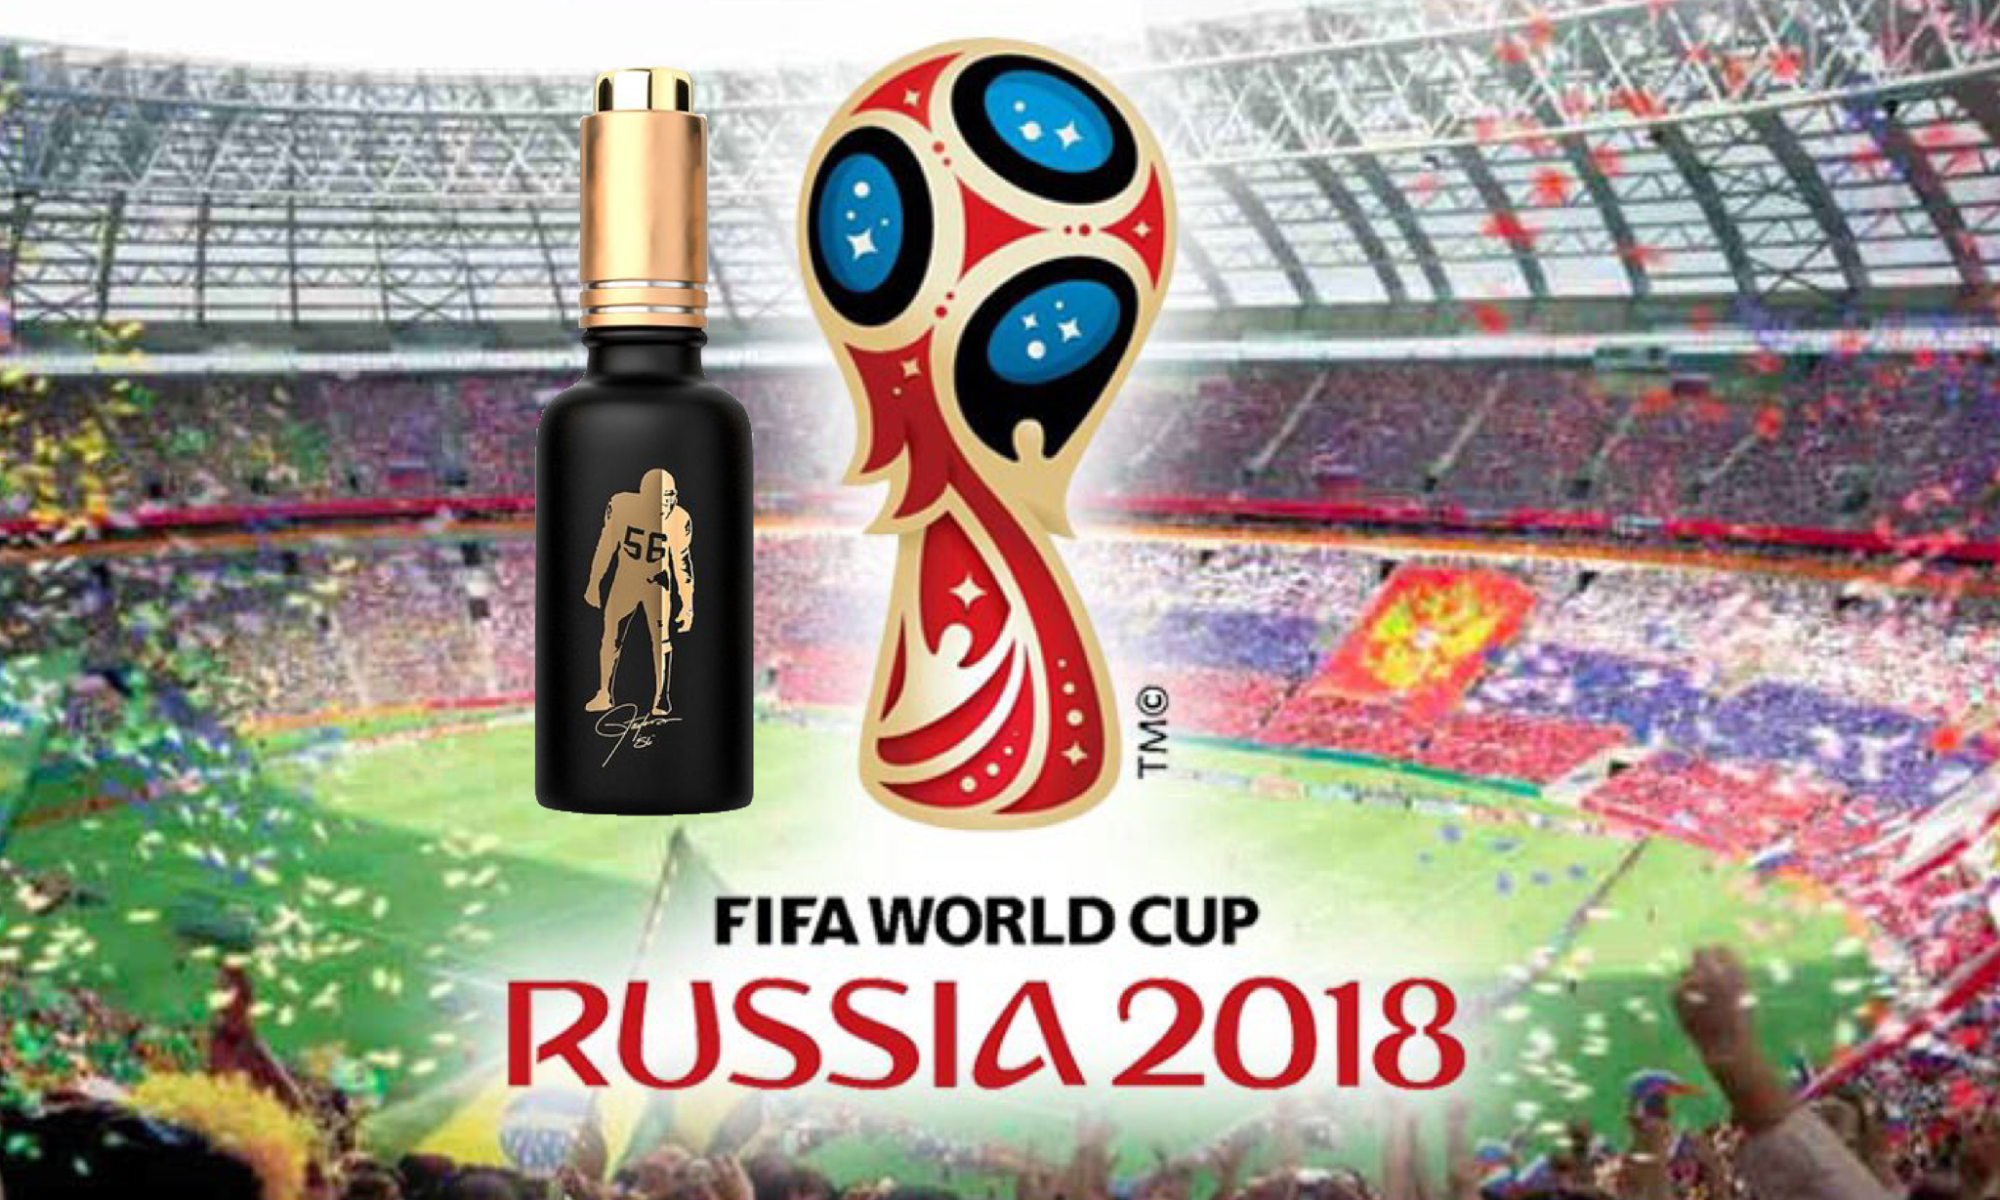 World cup 2018 players & Hemp benefits